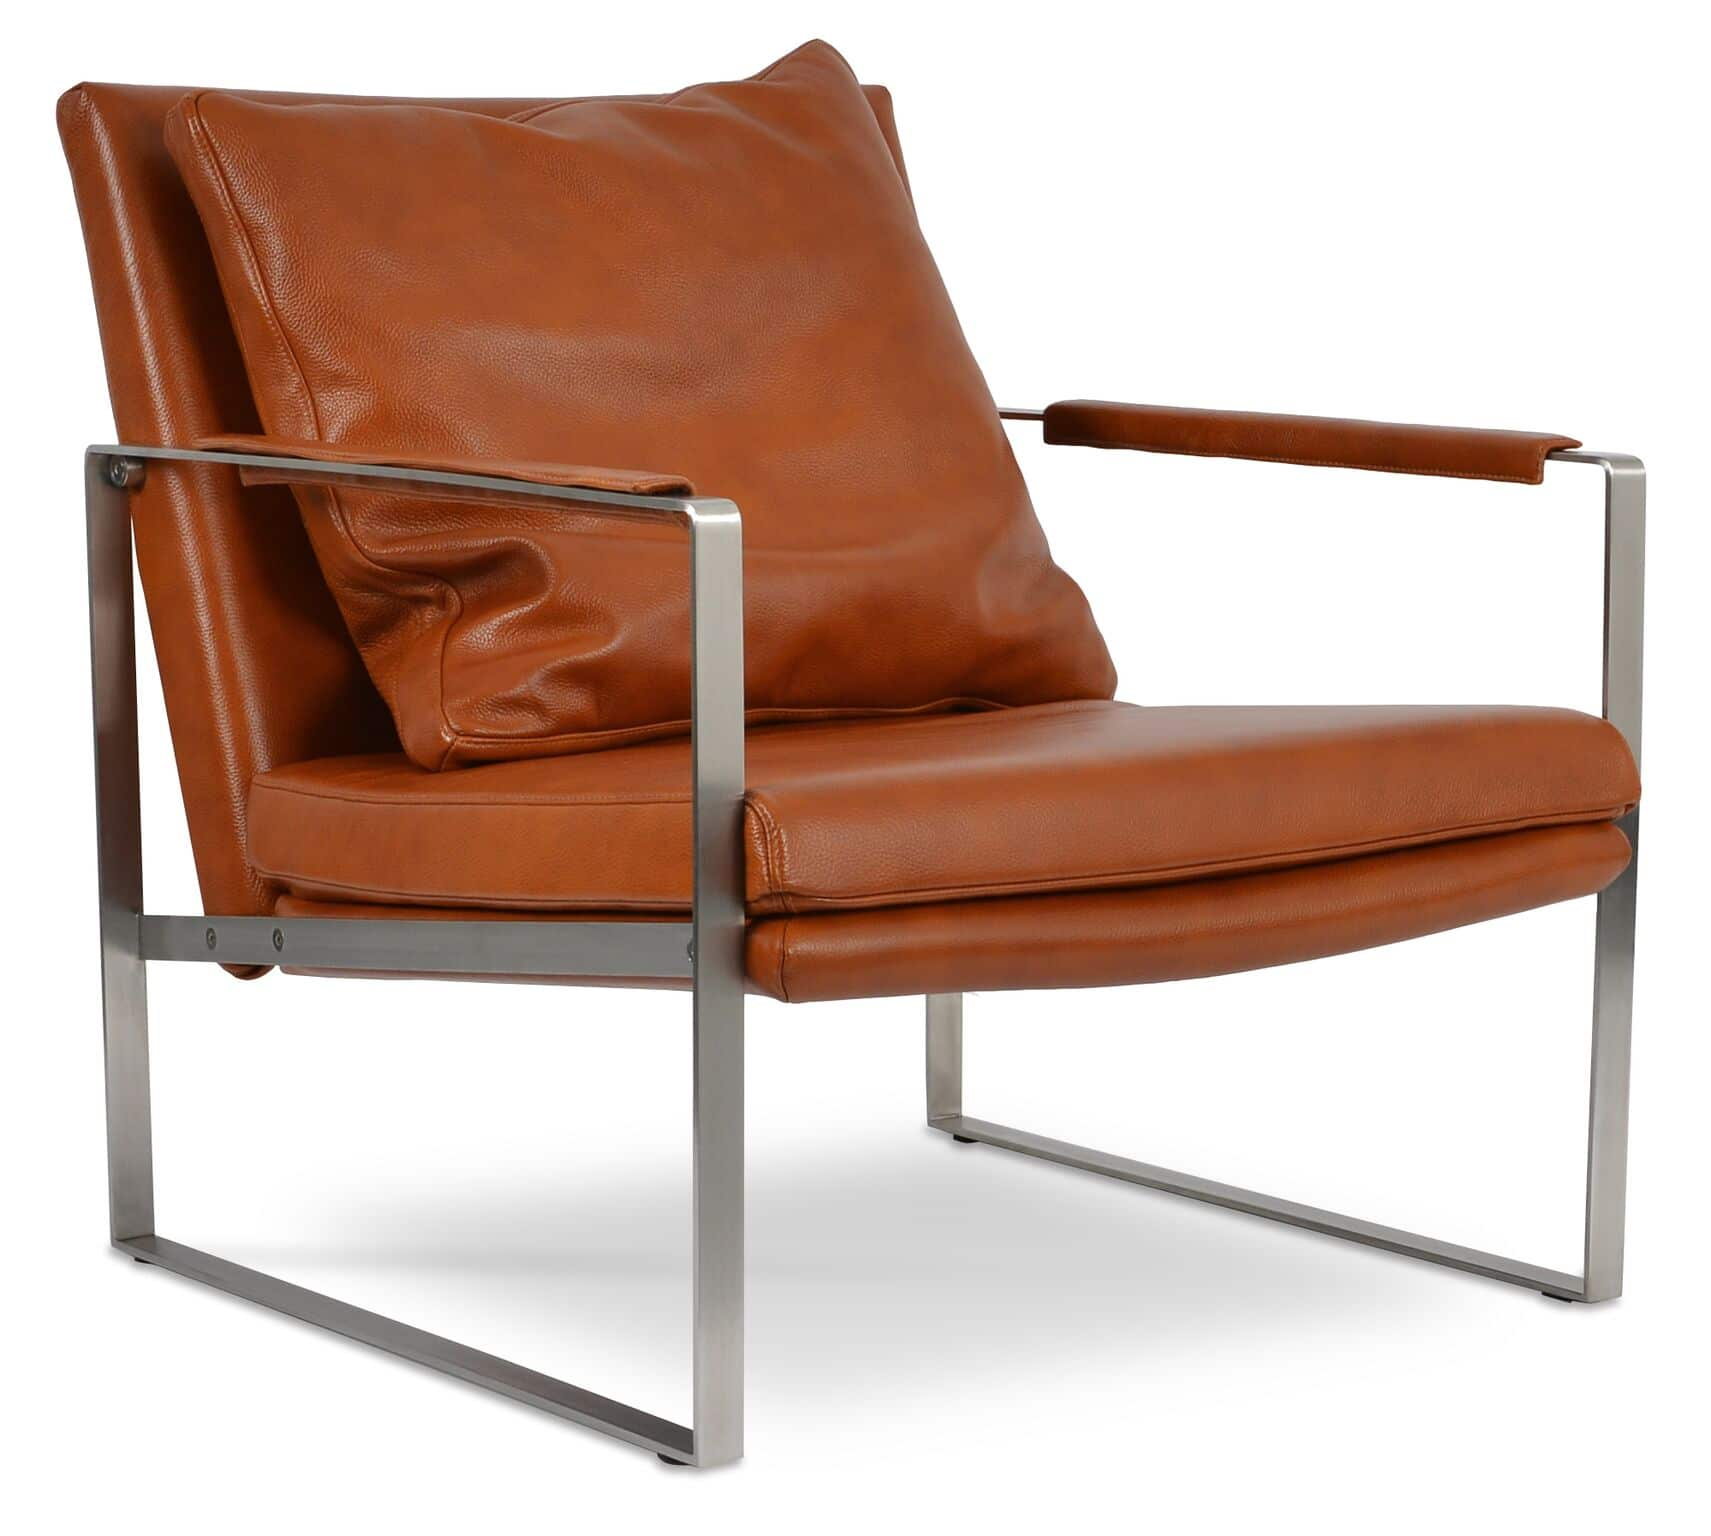 Soho Concepts Brown Leather Zara Chair